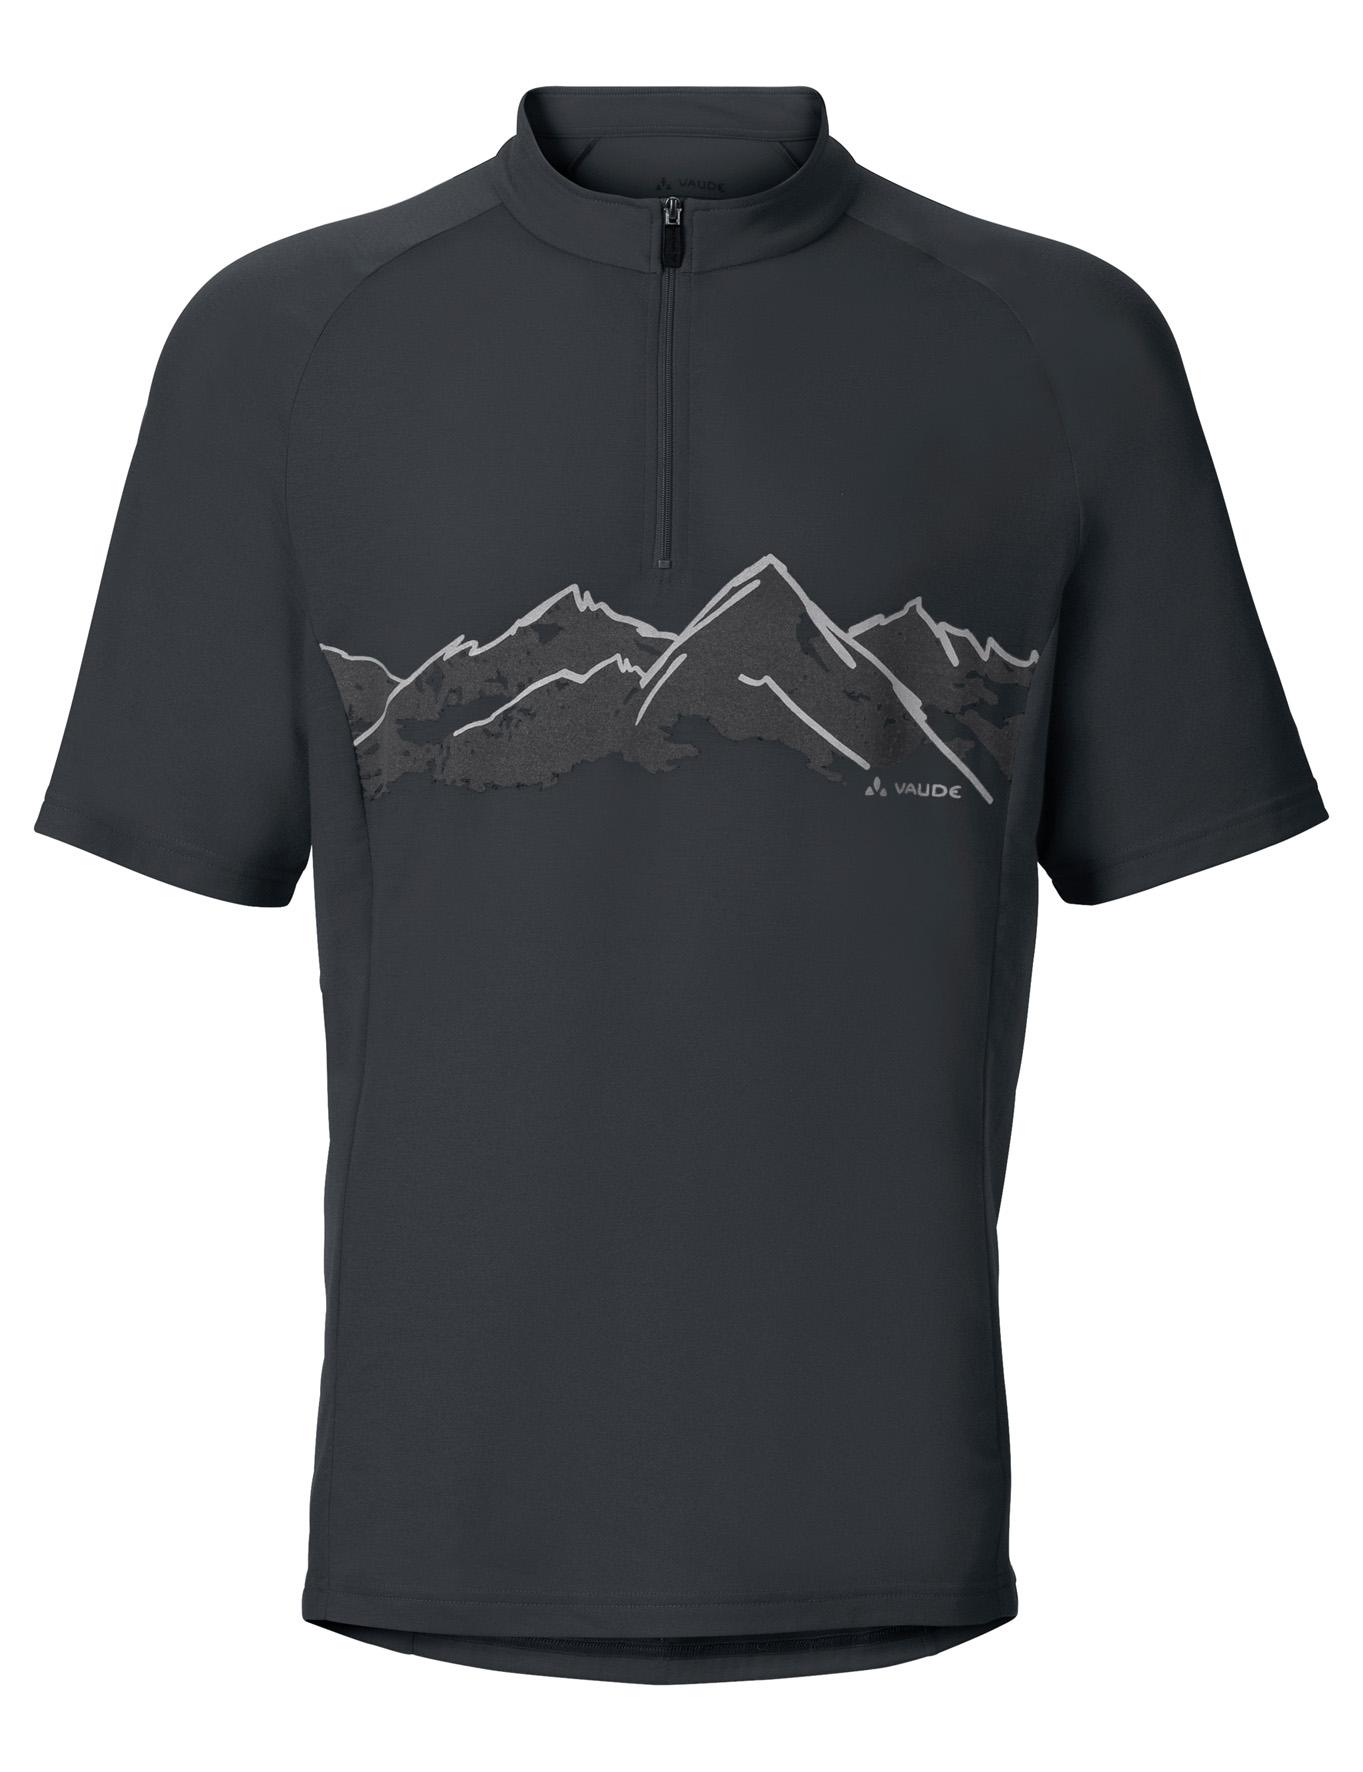 VAUDE Men´s Sentiero Shirt II black Größe S - schneider-sports